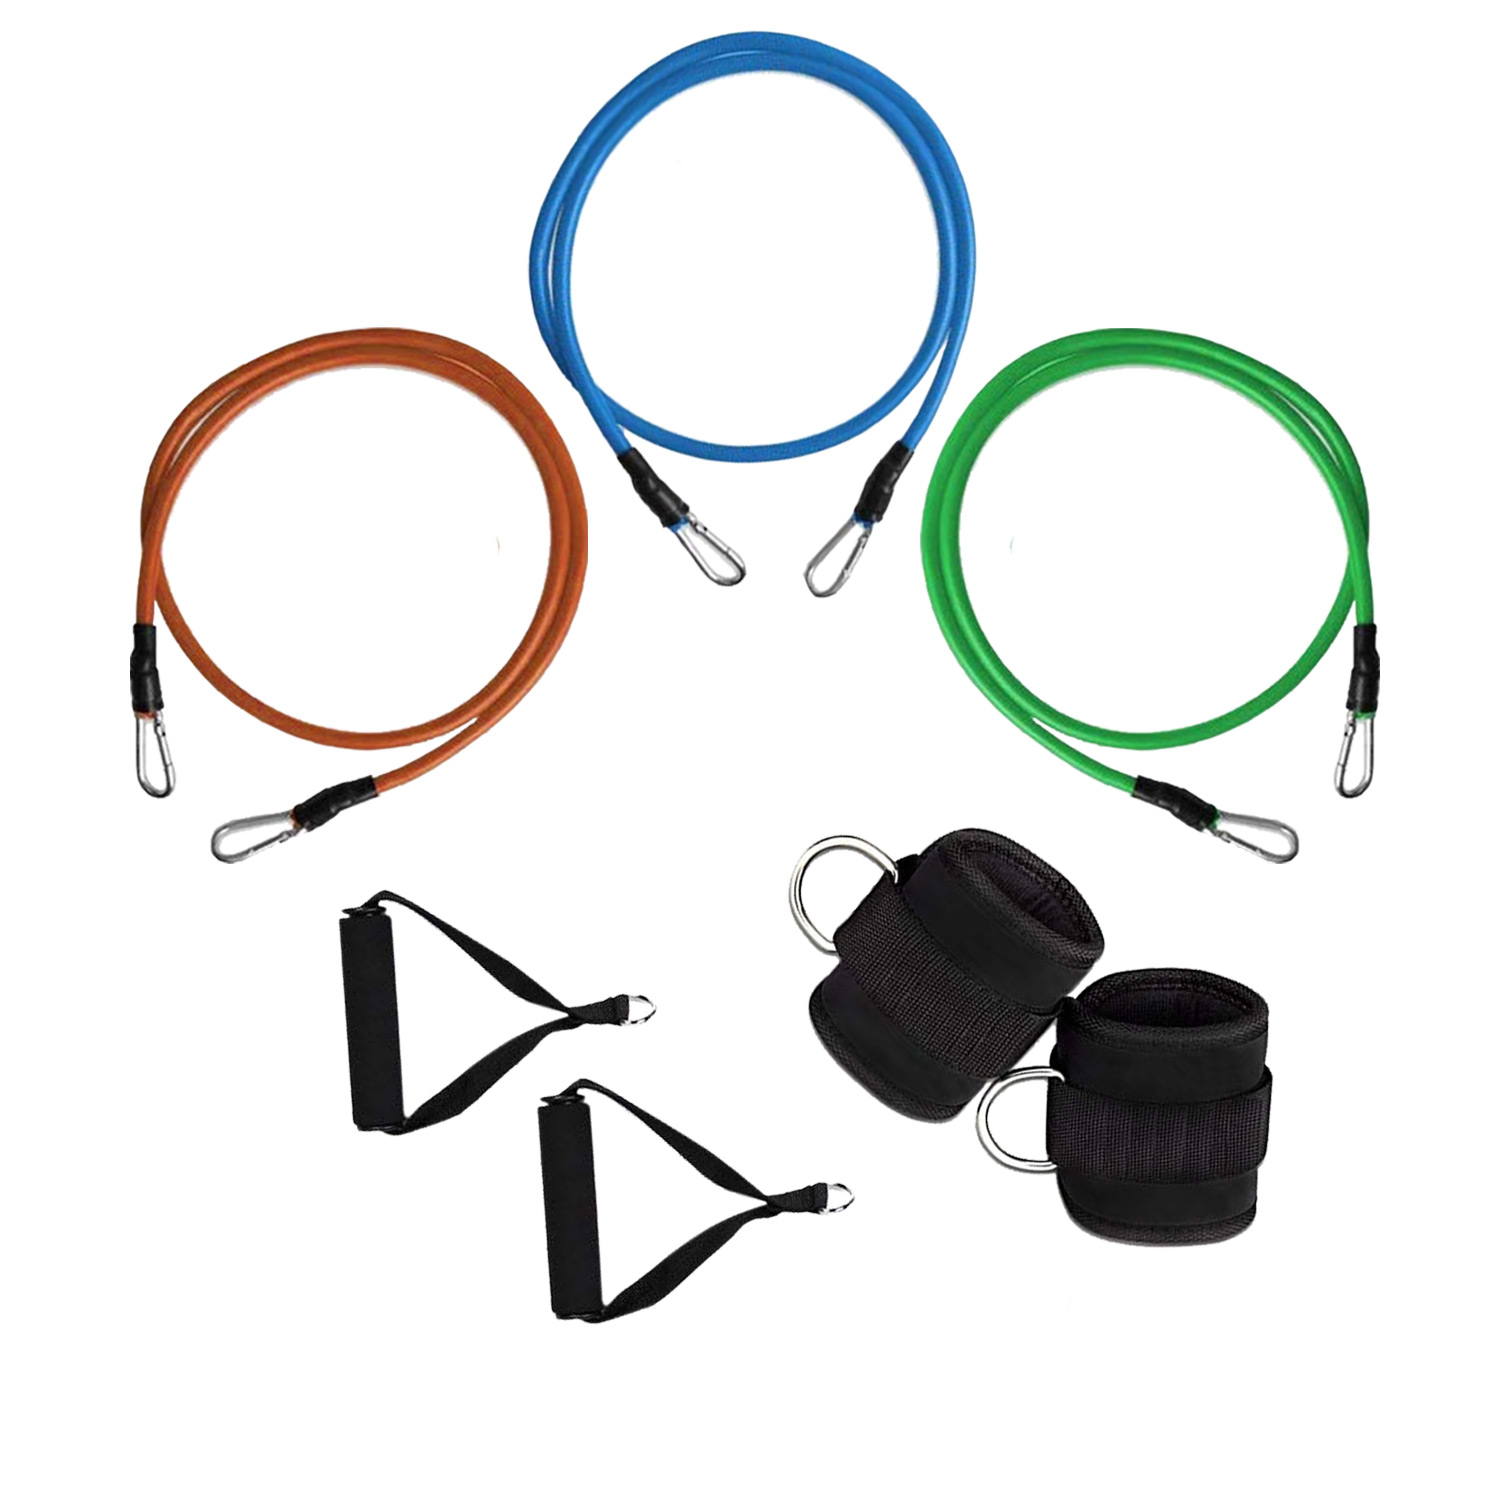 Set Di 3 Fasce Bande Elastici Resistenti In Lattice Con Maniglie Fitness Yoga.